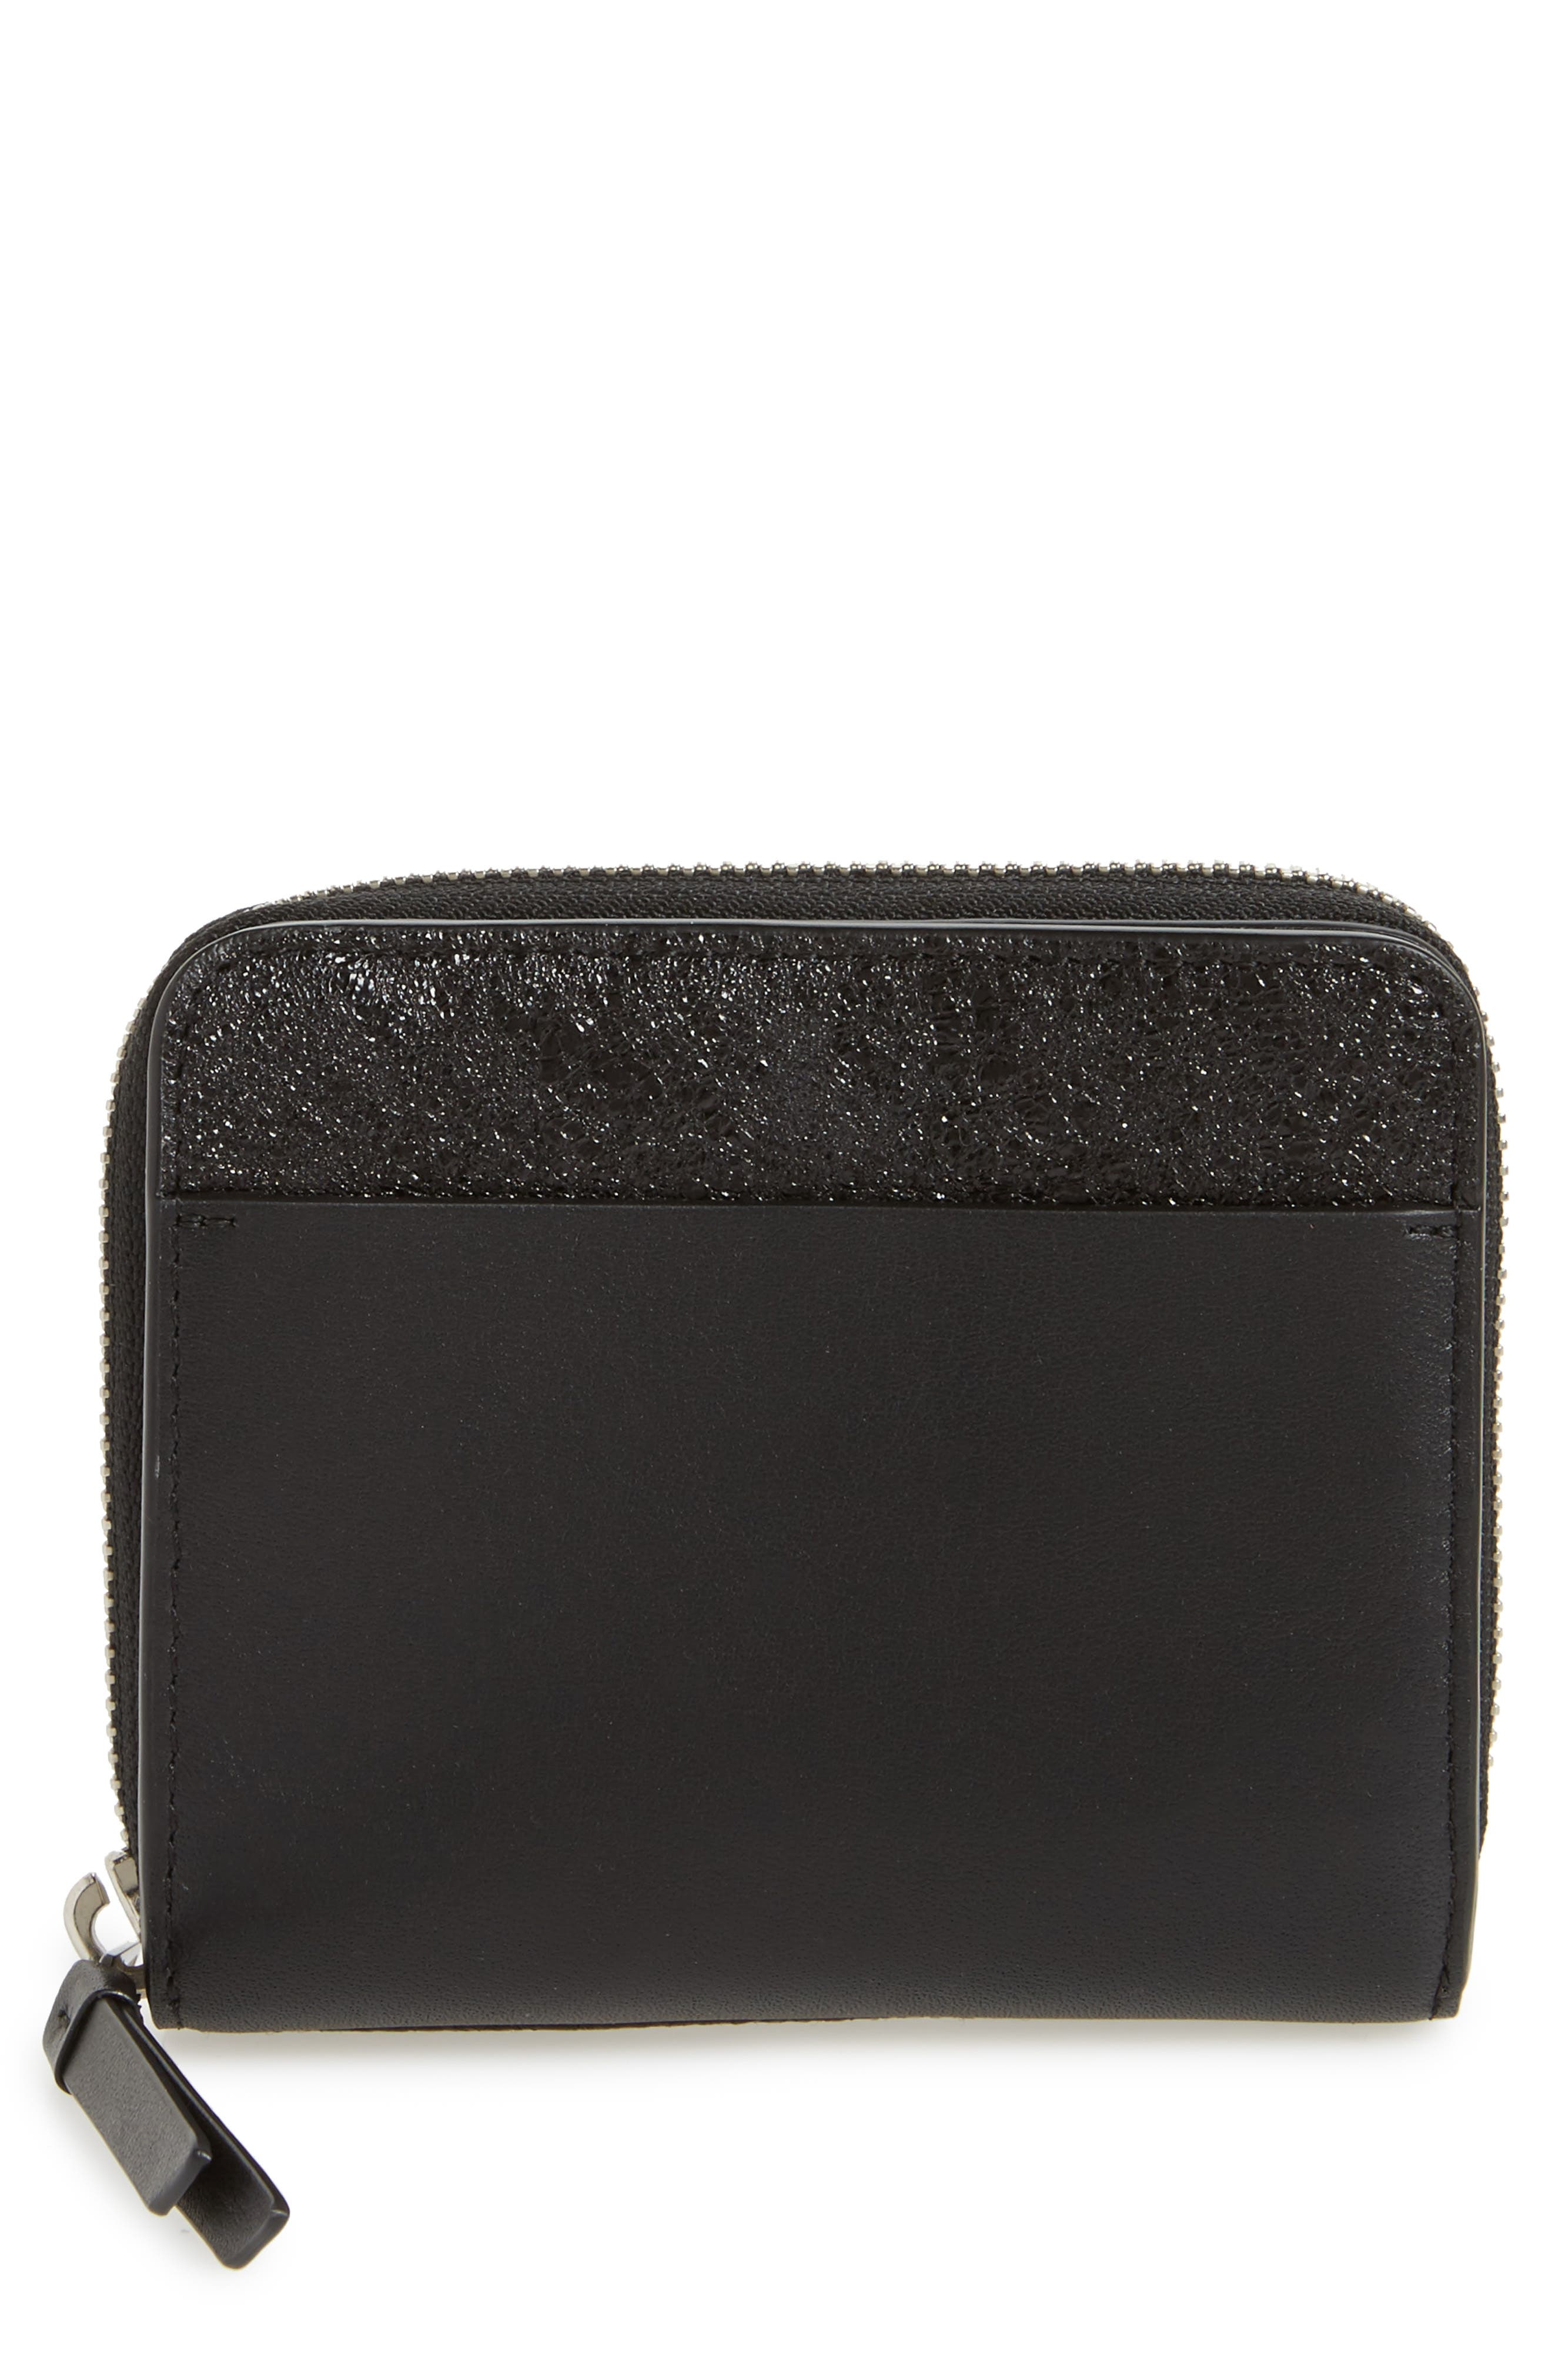 Mast Shine Leather Wallet,                         Main,                         color,